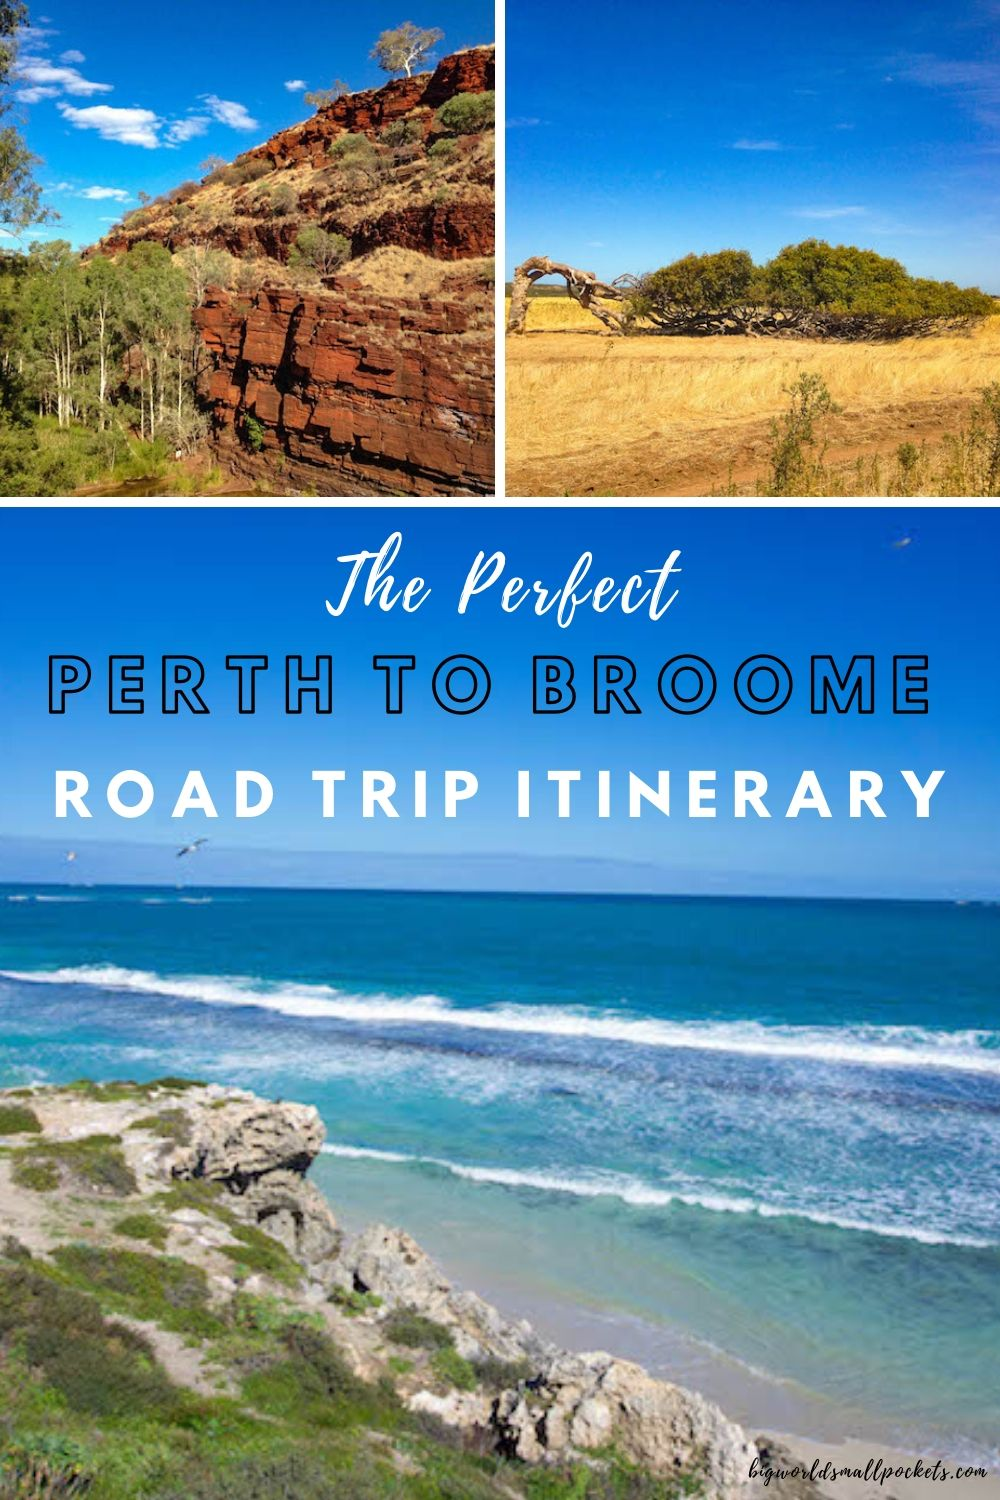 The Perfect 14 Day Perth to Broome Road Trip Itinerary